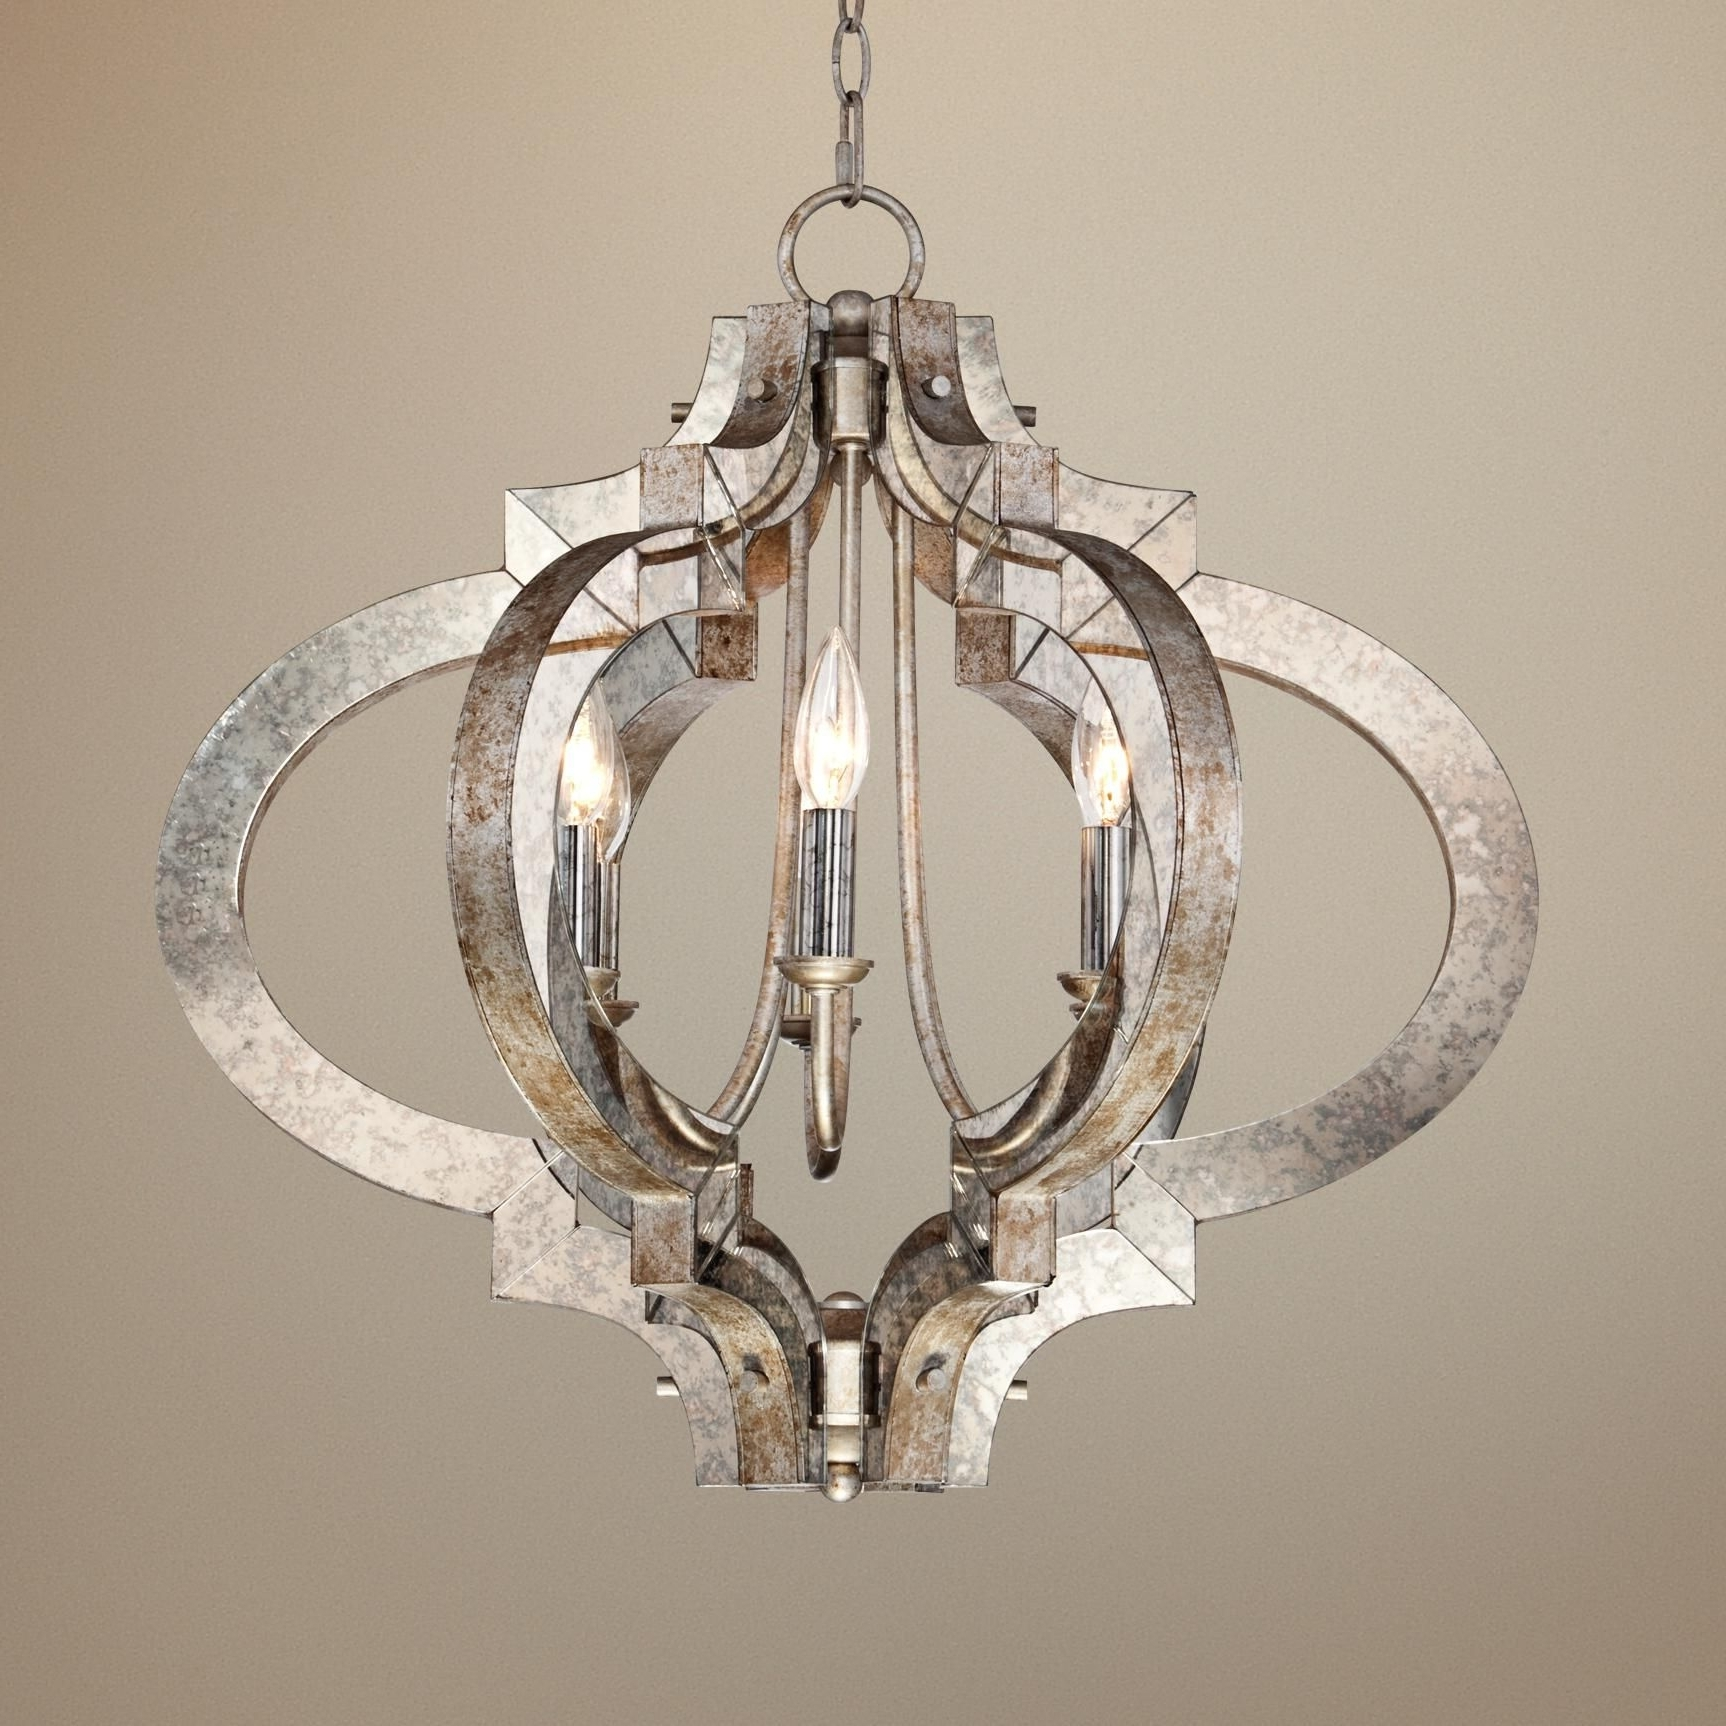 Possini Ornament Aged Silver 6 Light Chandelier – Style # T5031 With Regard To Most Popular Silver Chandeliers (View 11 of 20)